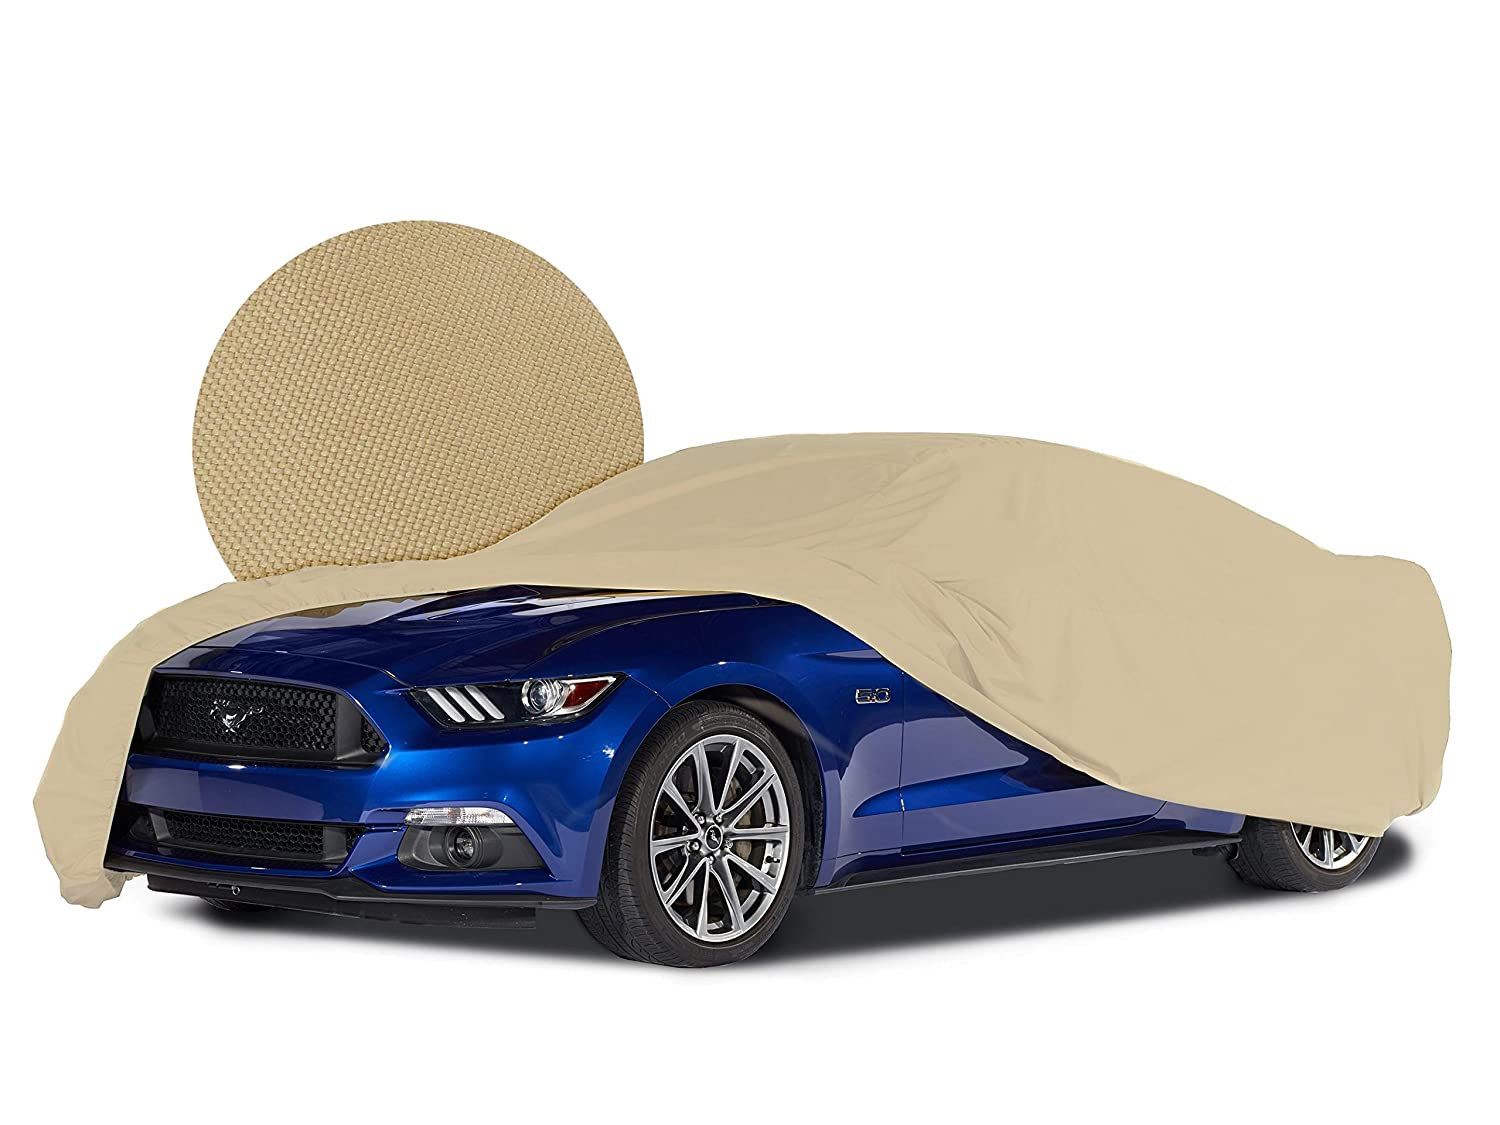 Covermates - Contour Fit Car Cover - Up to 15' - Elite Collection - 5 YR Warranty